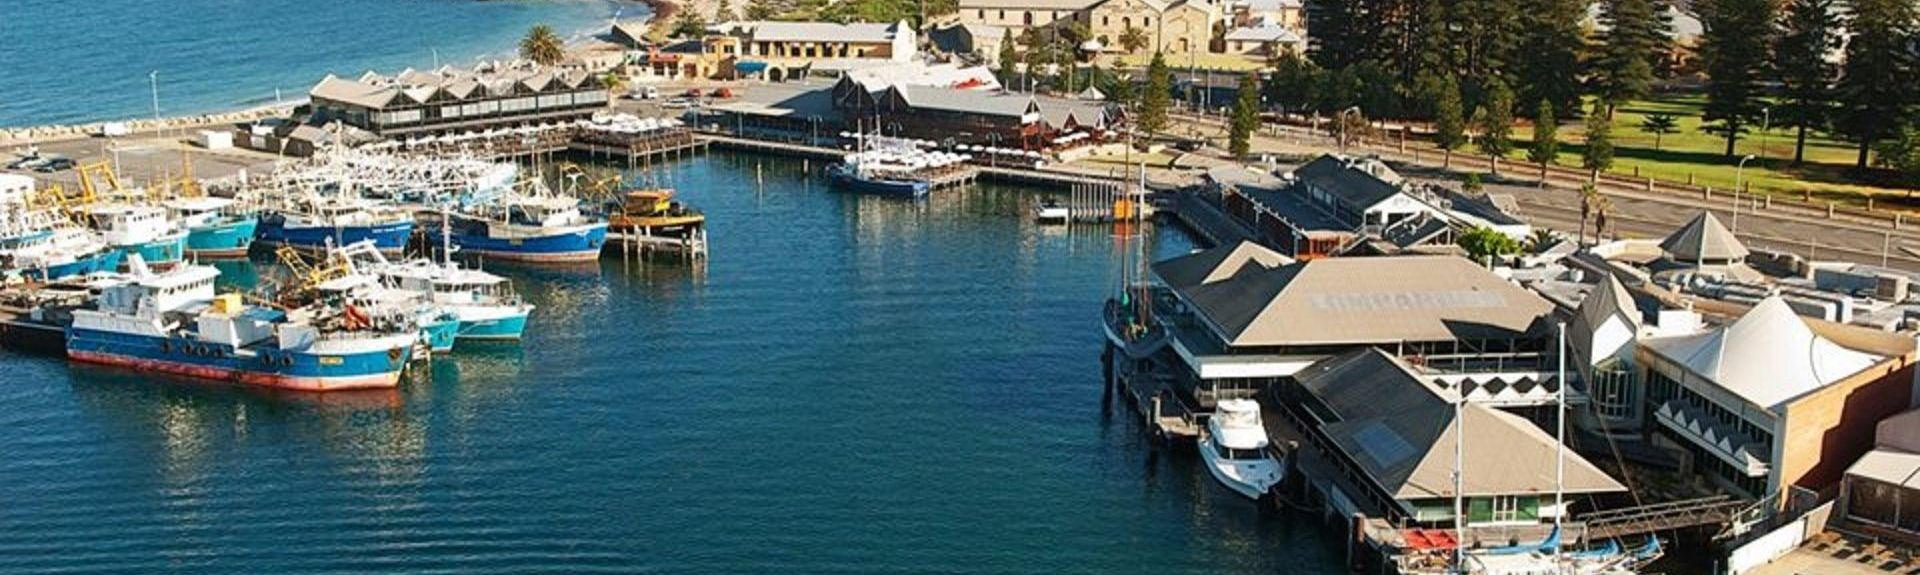 East Fremantle, Perth, Western Australia, Australia